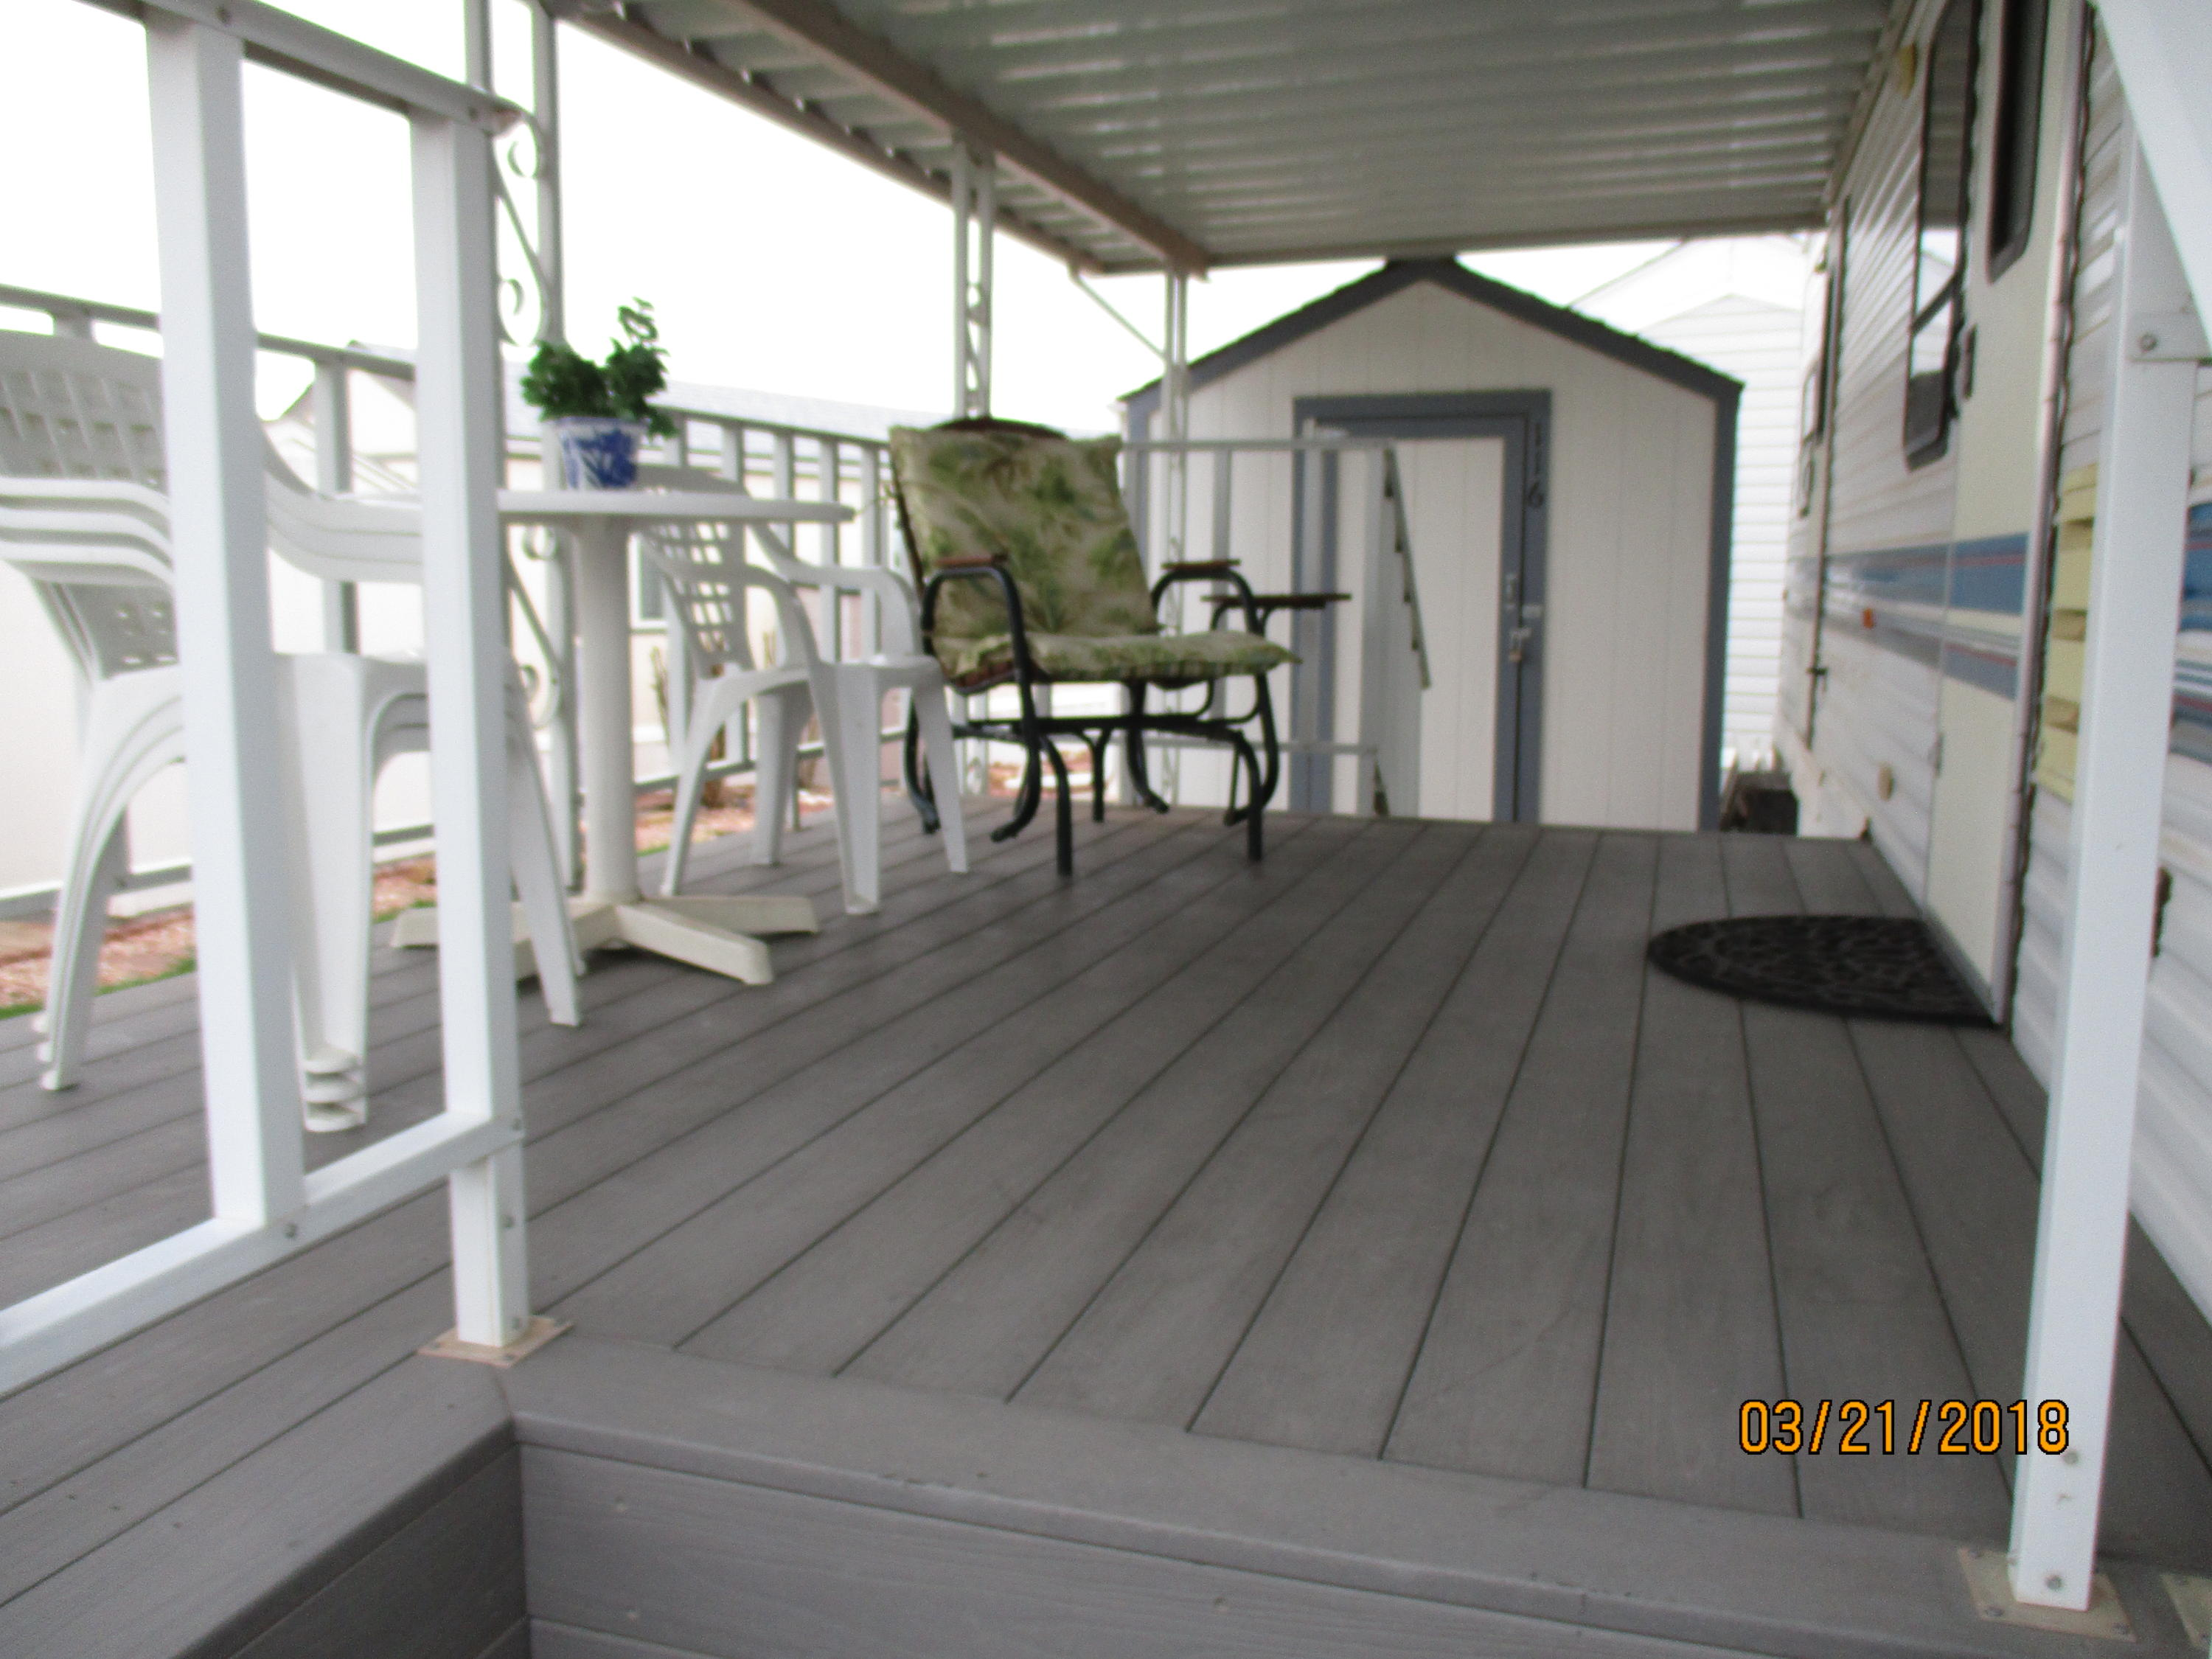 LOCATED IN THE 55+ ACTIVE ADULT COMMUNITY OF CHEROKEE SPRINGS, IS THIS IMMACULATE 30 FOOT 1995 PROWLER TRAILER. THIS TRAILER HAS ONE LARGE SLIDEOUT & IS FULLY FURNISHED AND MOVE-IN READY.  GREAT LARGE LOT WITH 8 X 8 SHED/LAUNDRY, ATTACHED COVERED DECK WITH TREX FLOORING.  YOU OWN THE LOT AS WELL.LOW HOA DUES OF $60.00 COVERS WATER (IN & OUT), PARTIAL YARD MAINTENANCE,  GARBAGE & CLUBHOUSE.